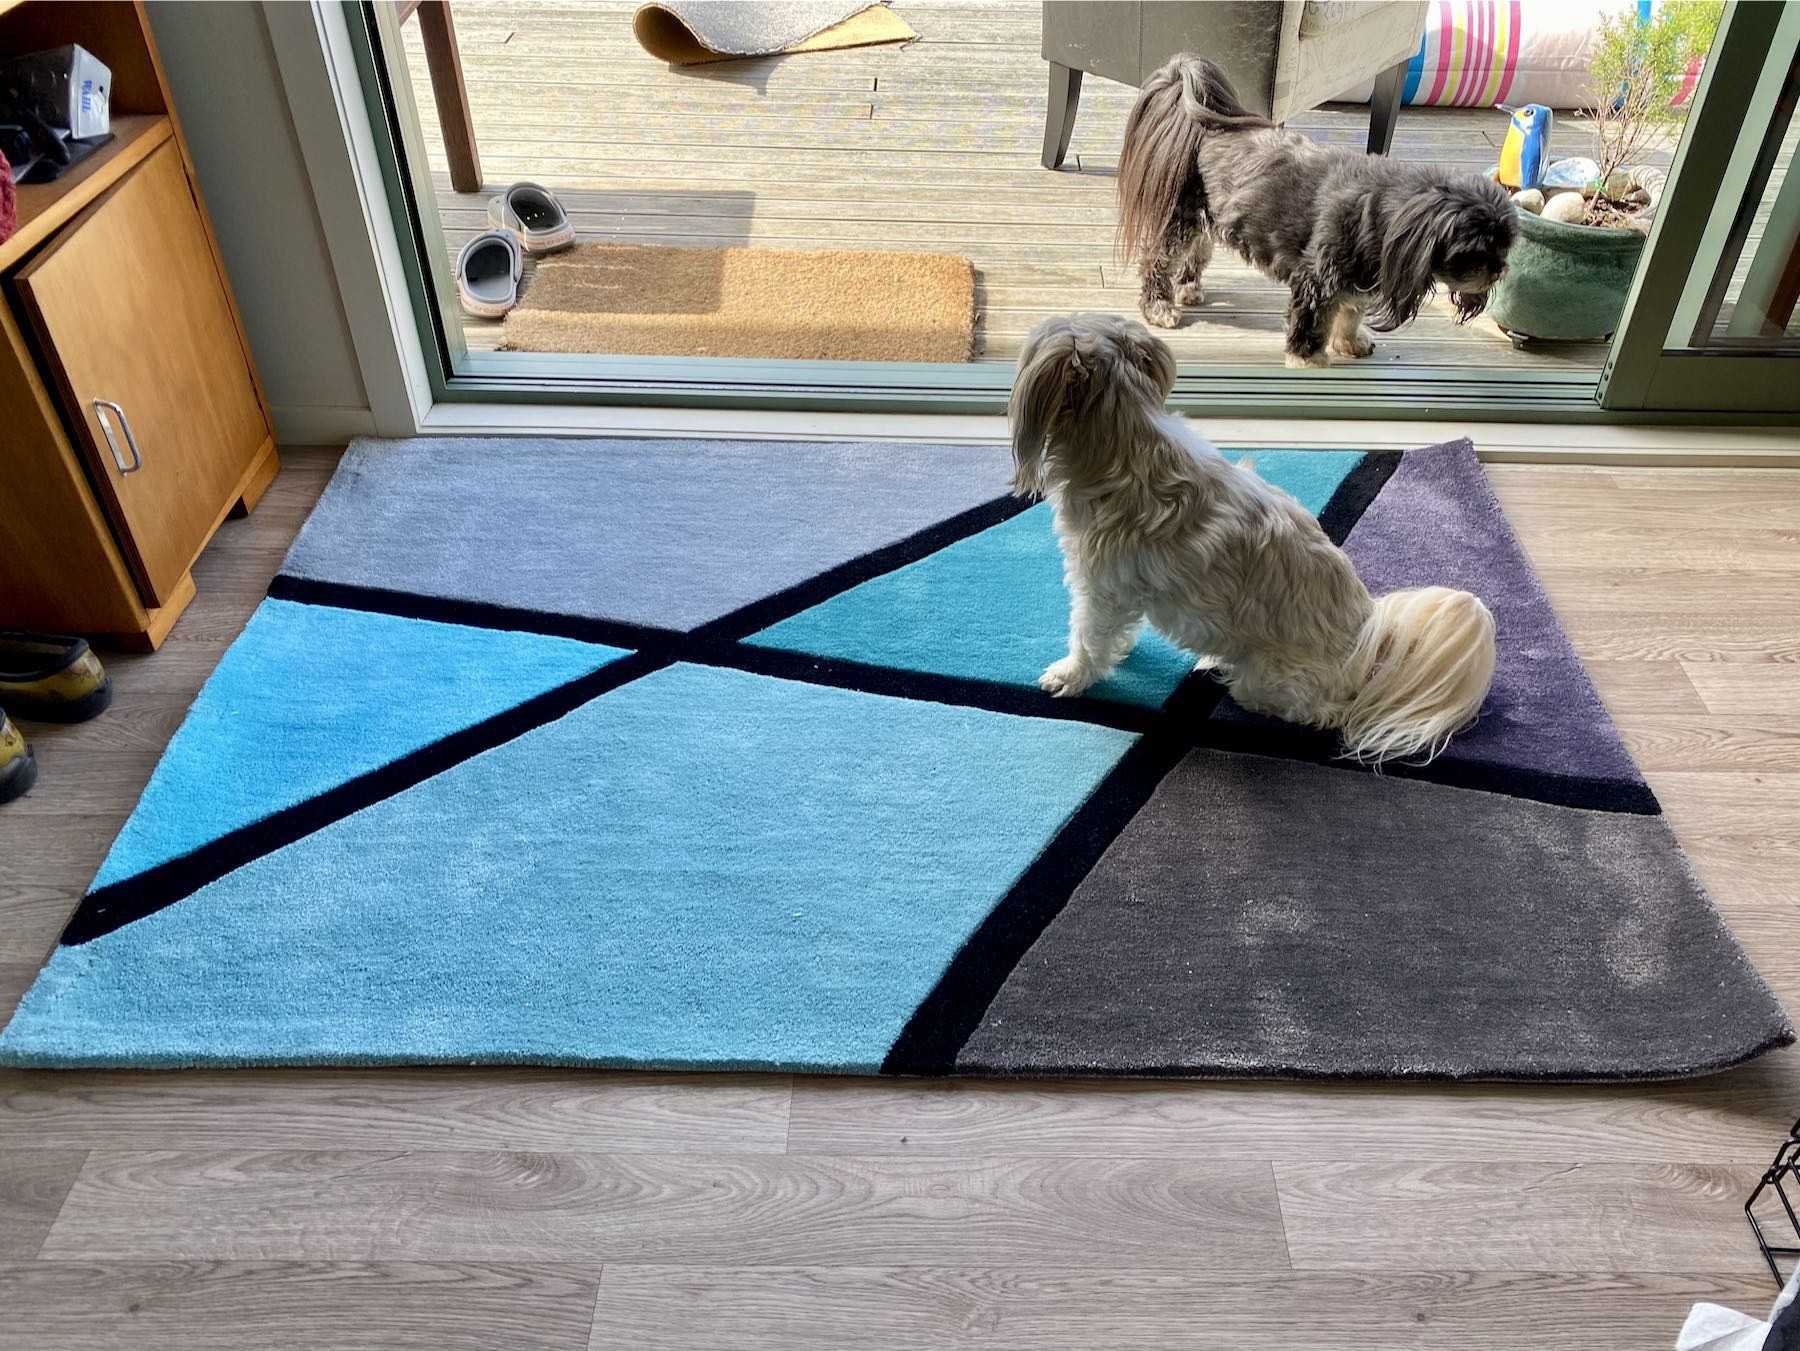 Small pale dog on a multicoloured rug.